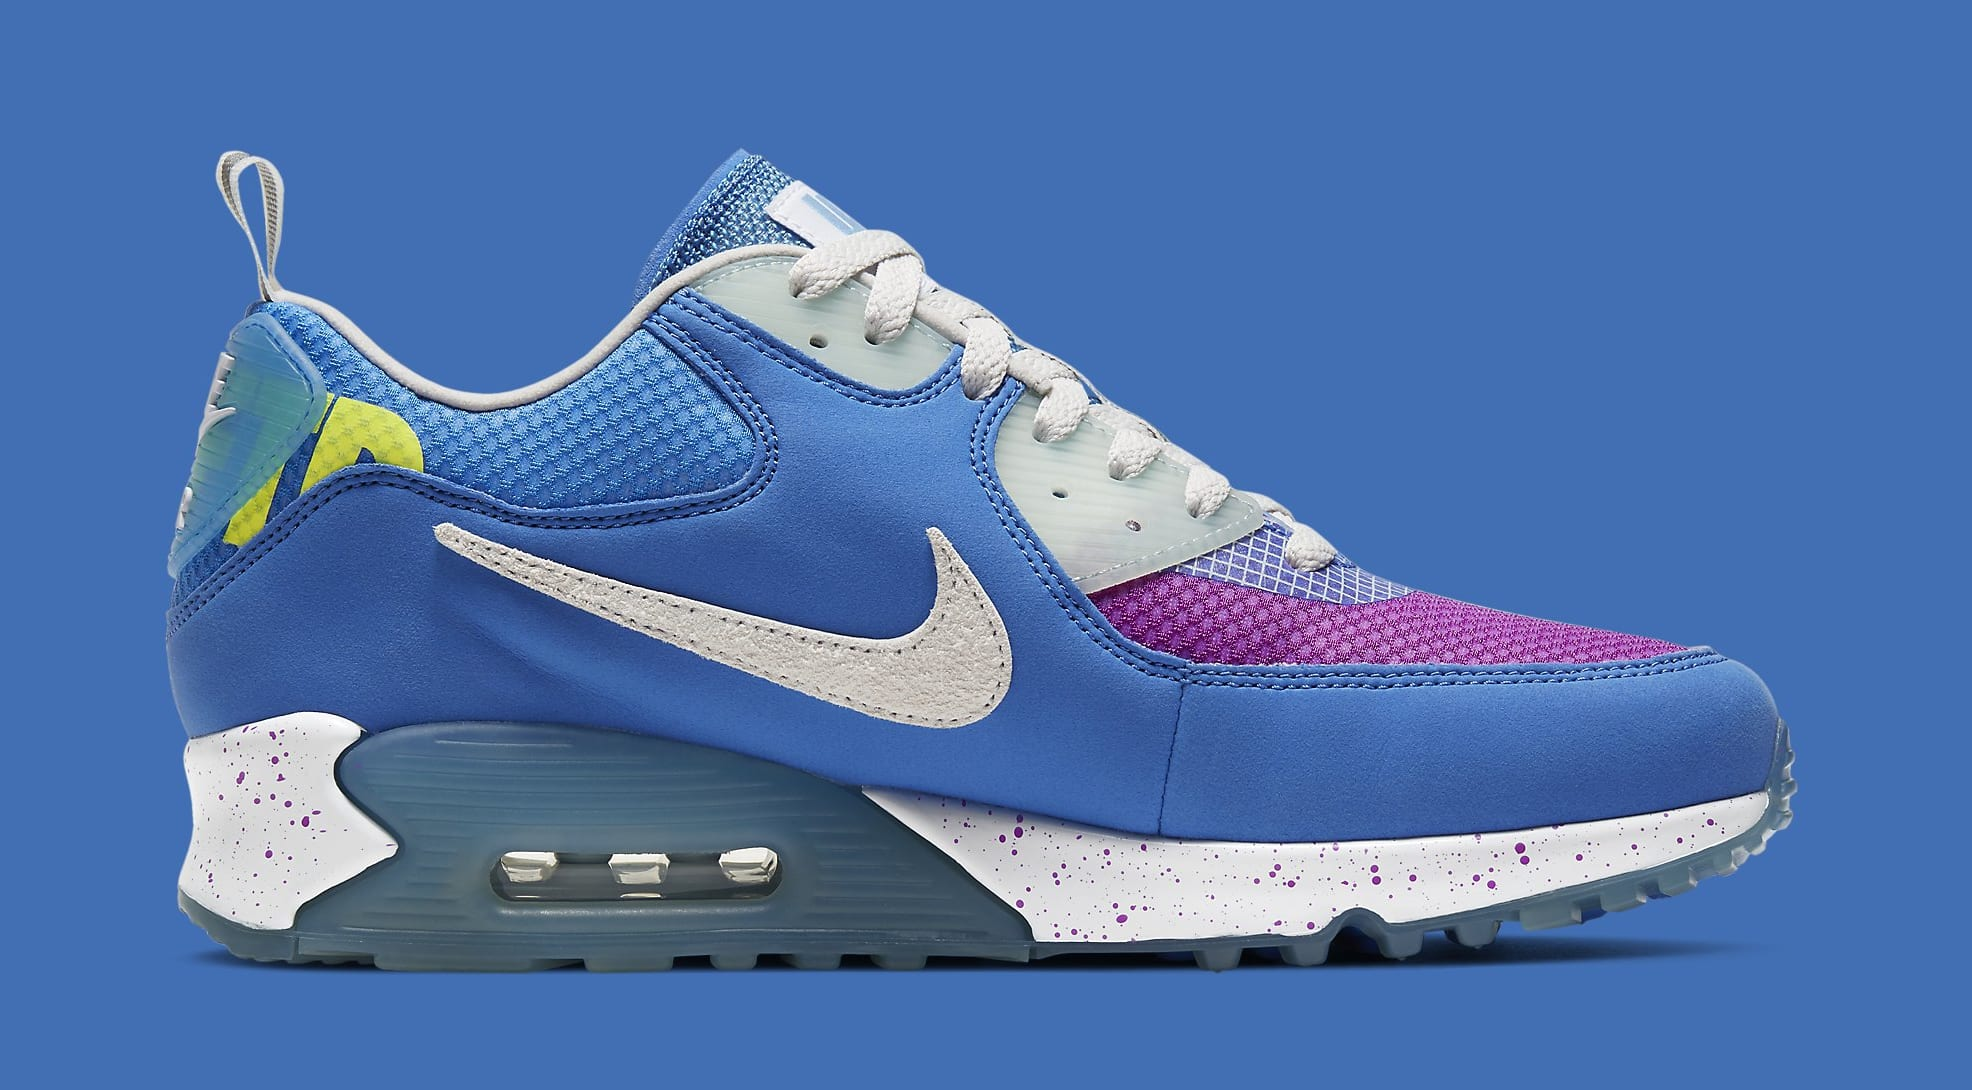 undefeated-nike-air-max-90-pacific-blue-cq2289-400-medial